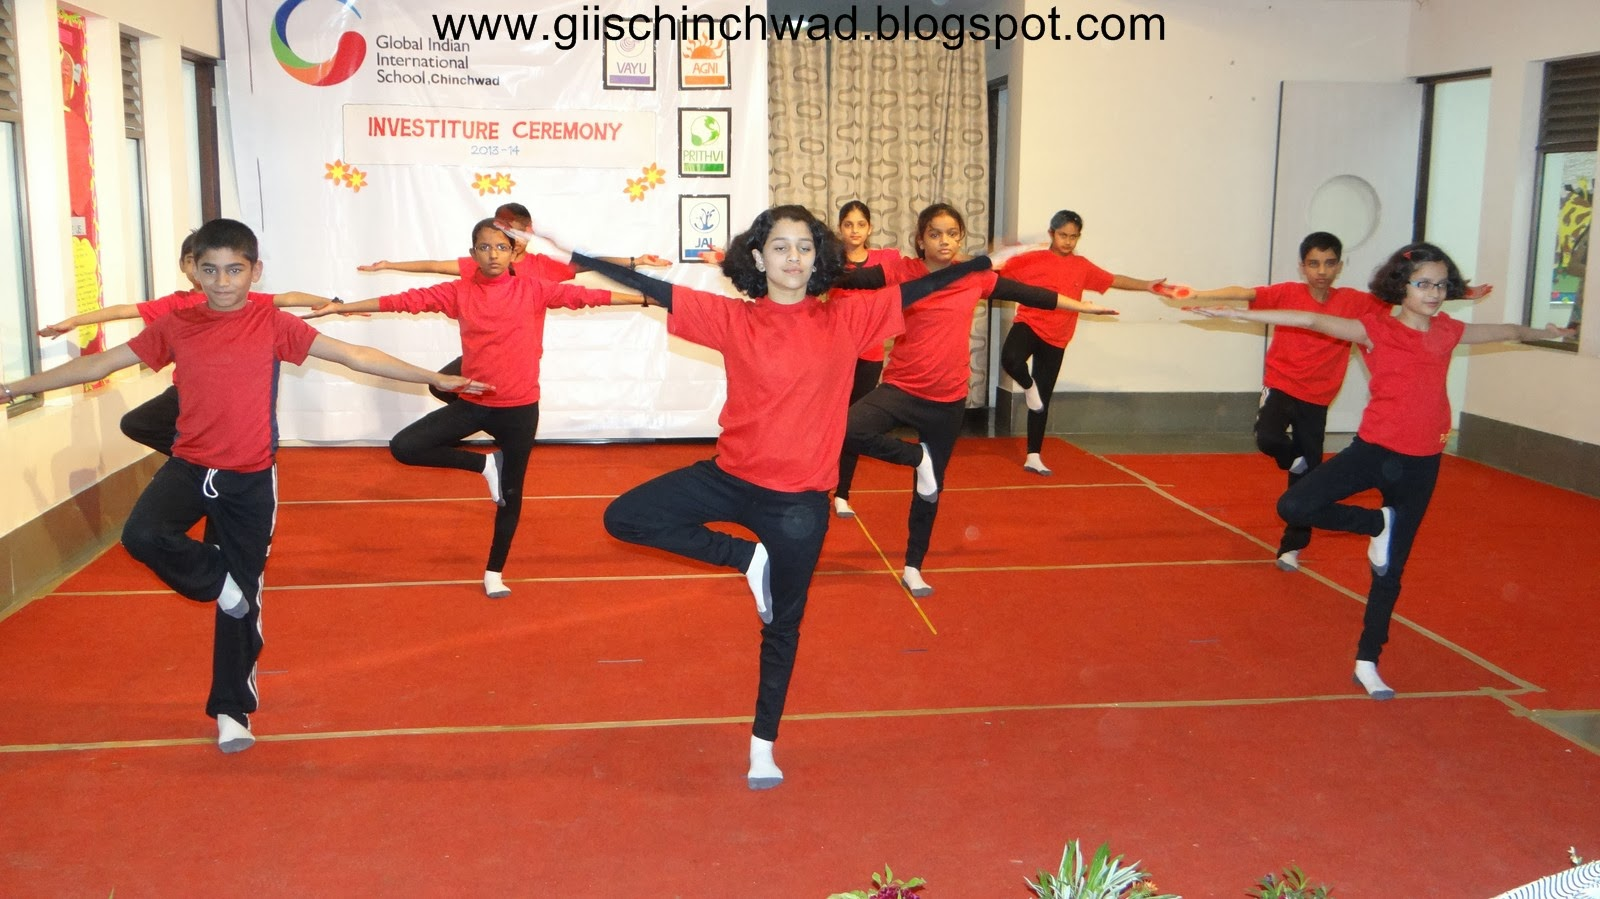 gis international school pune